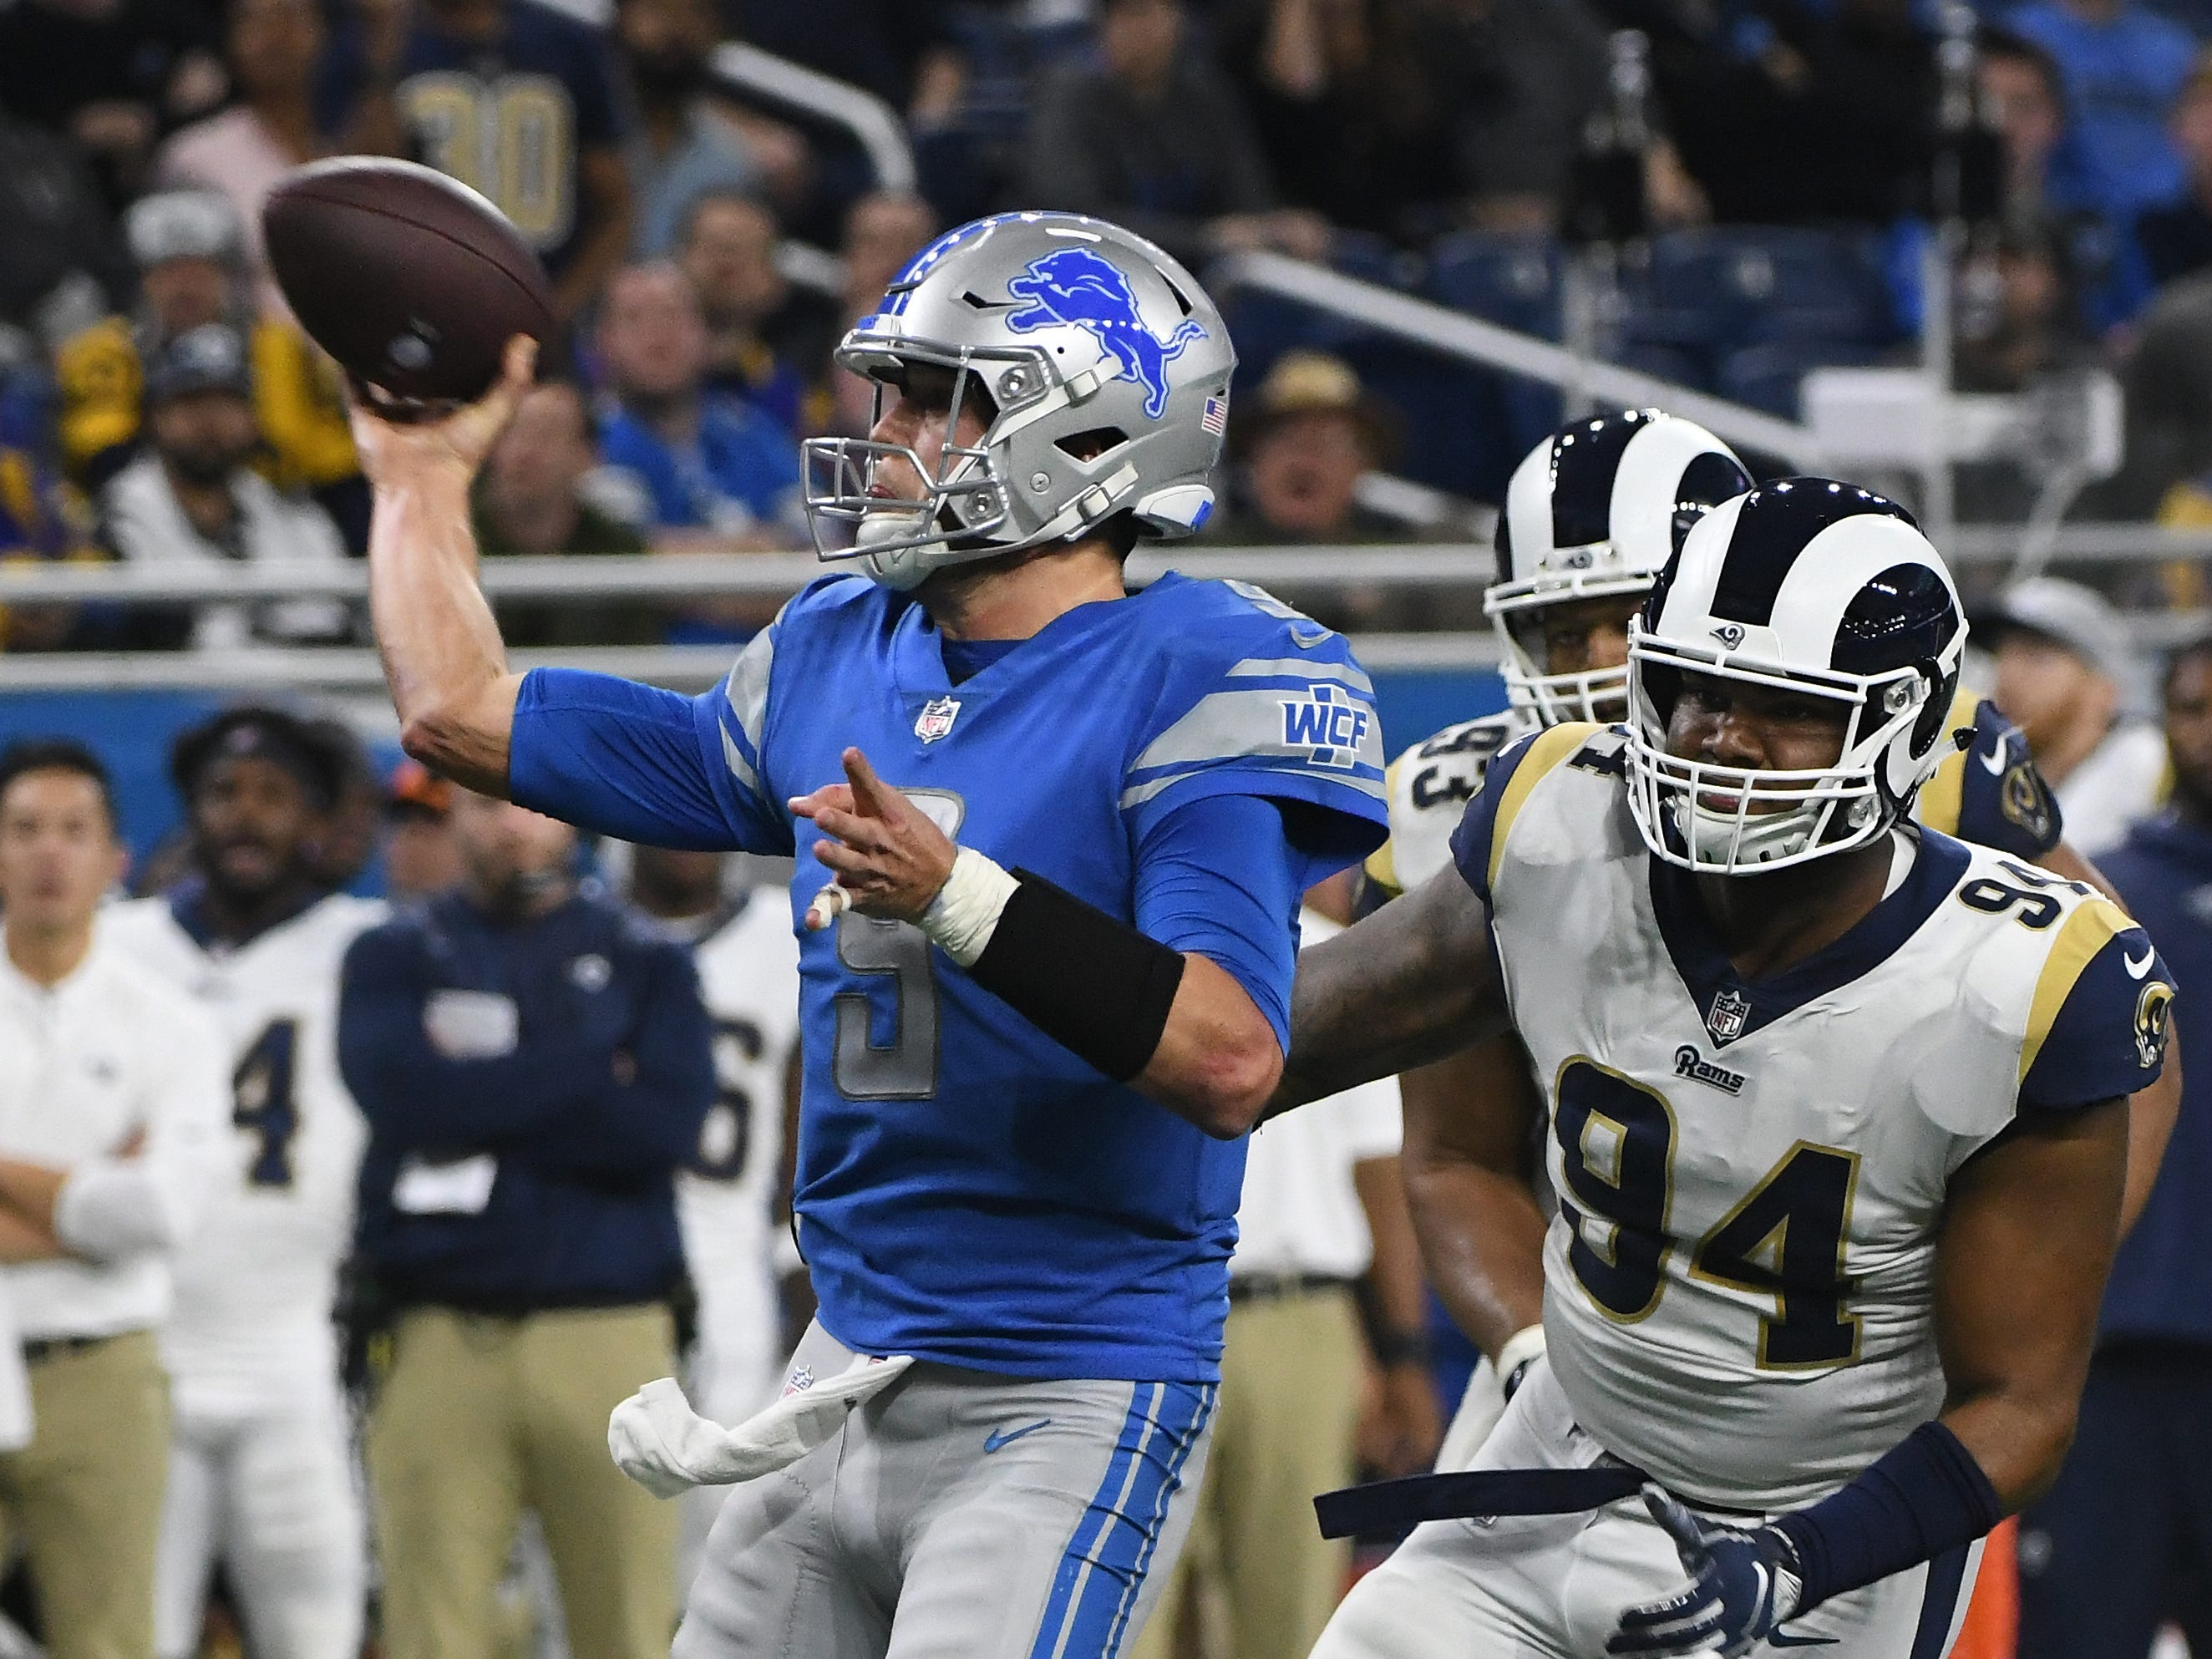 Lions quarterback Matthew Stafford scrambles out of the pocket but throws an incompletion in the end zone late in the fourth quarter.